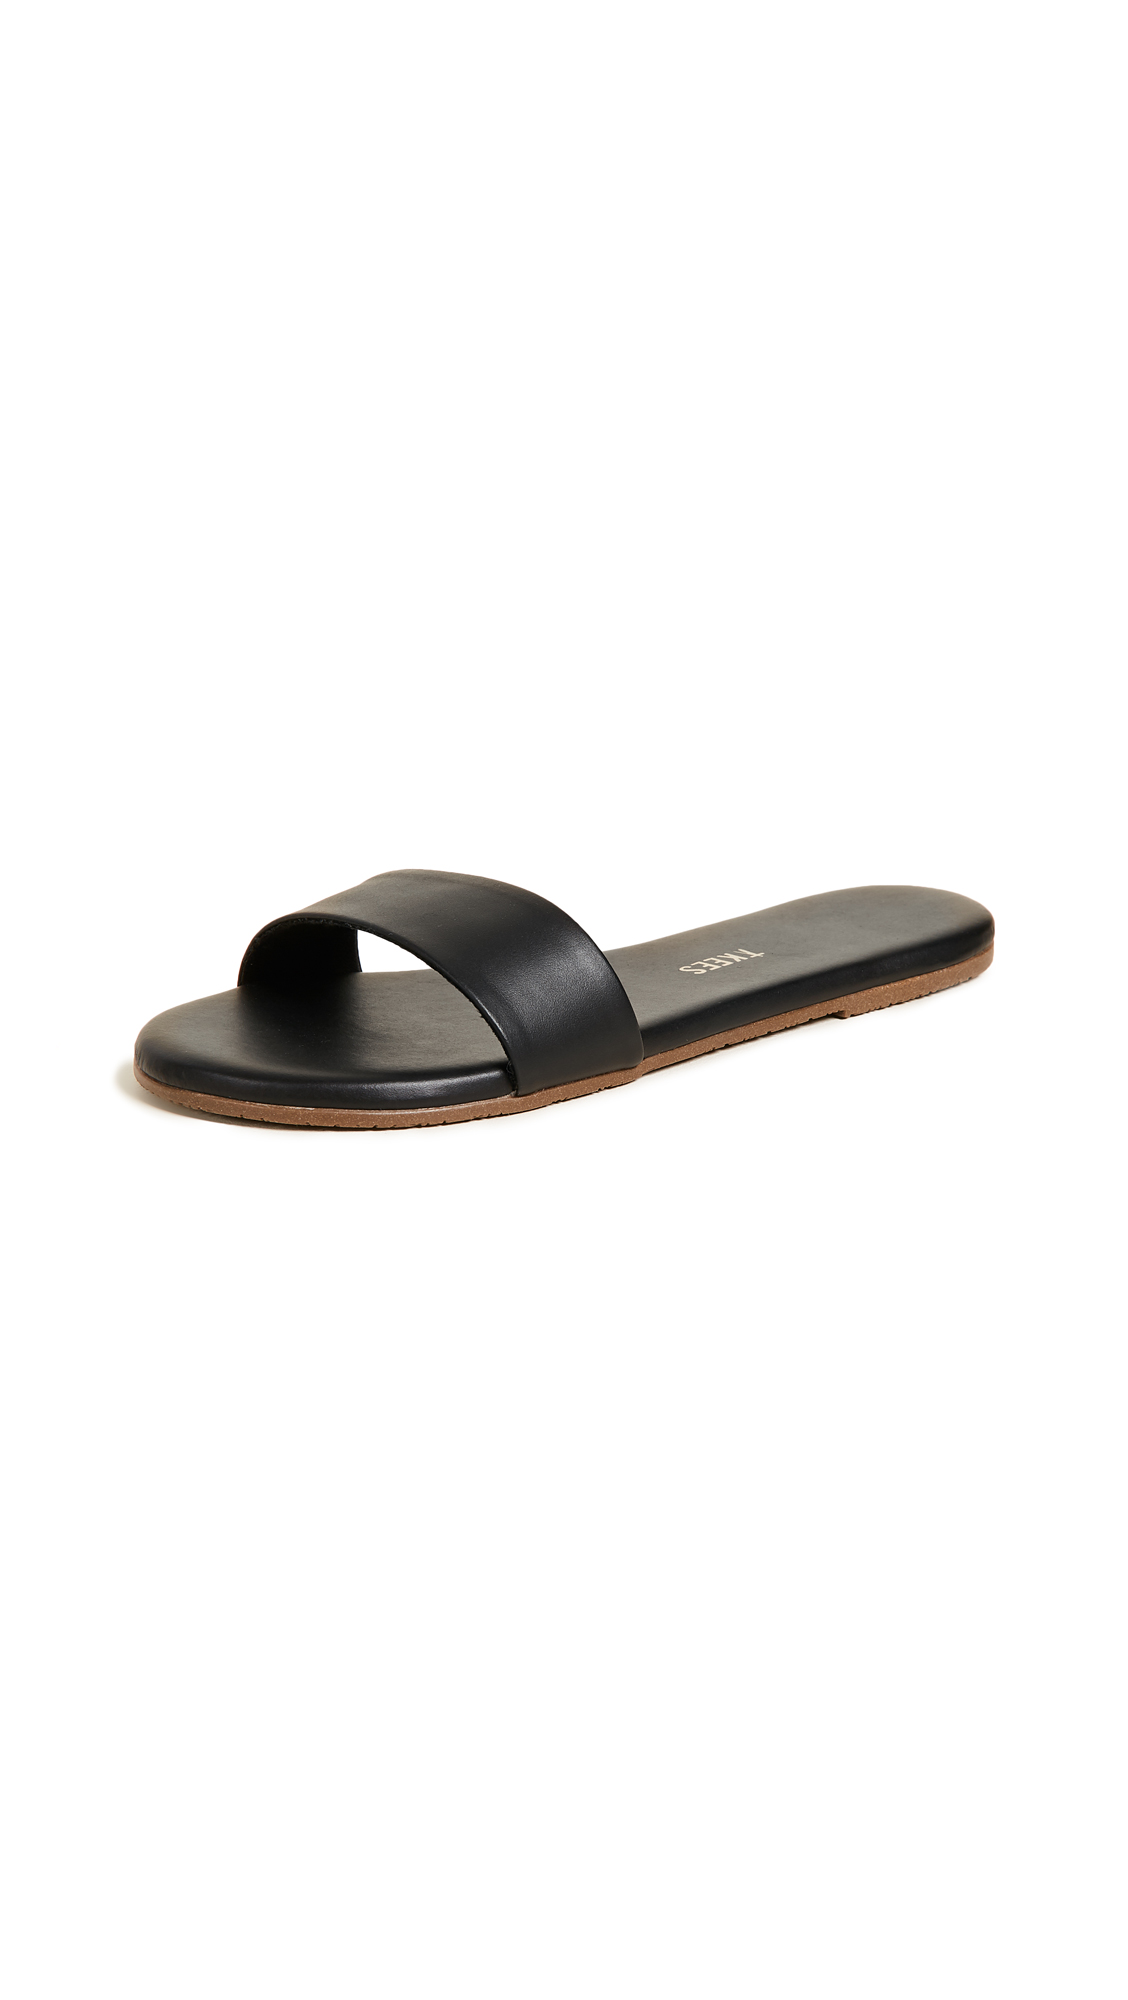 TKEES Alex Slides - Black Stone